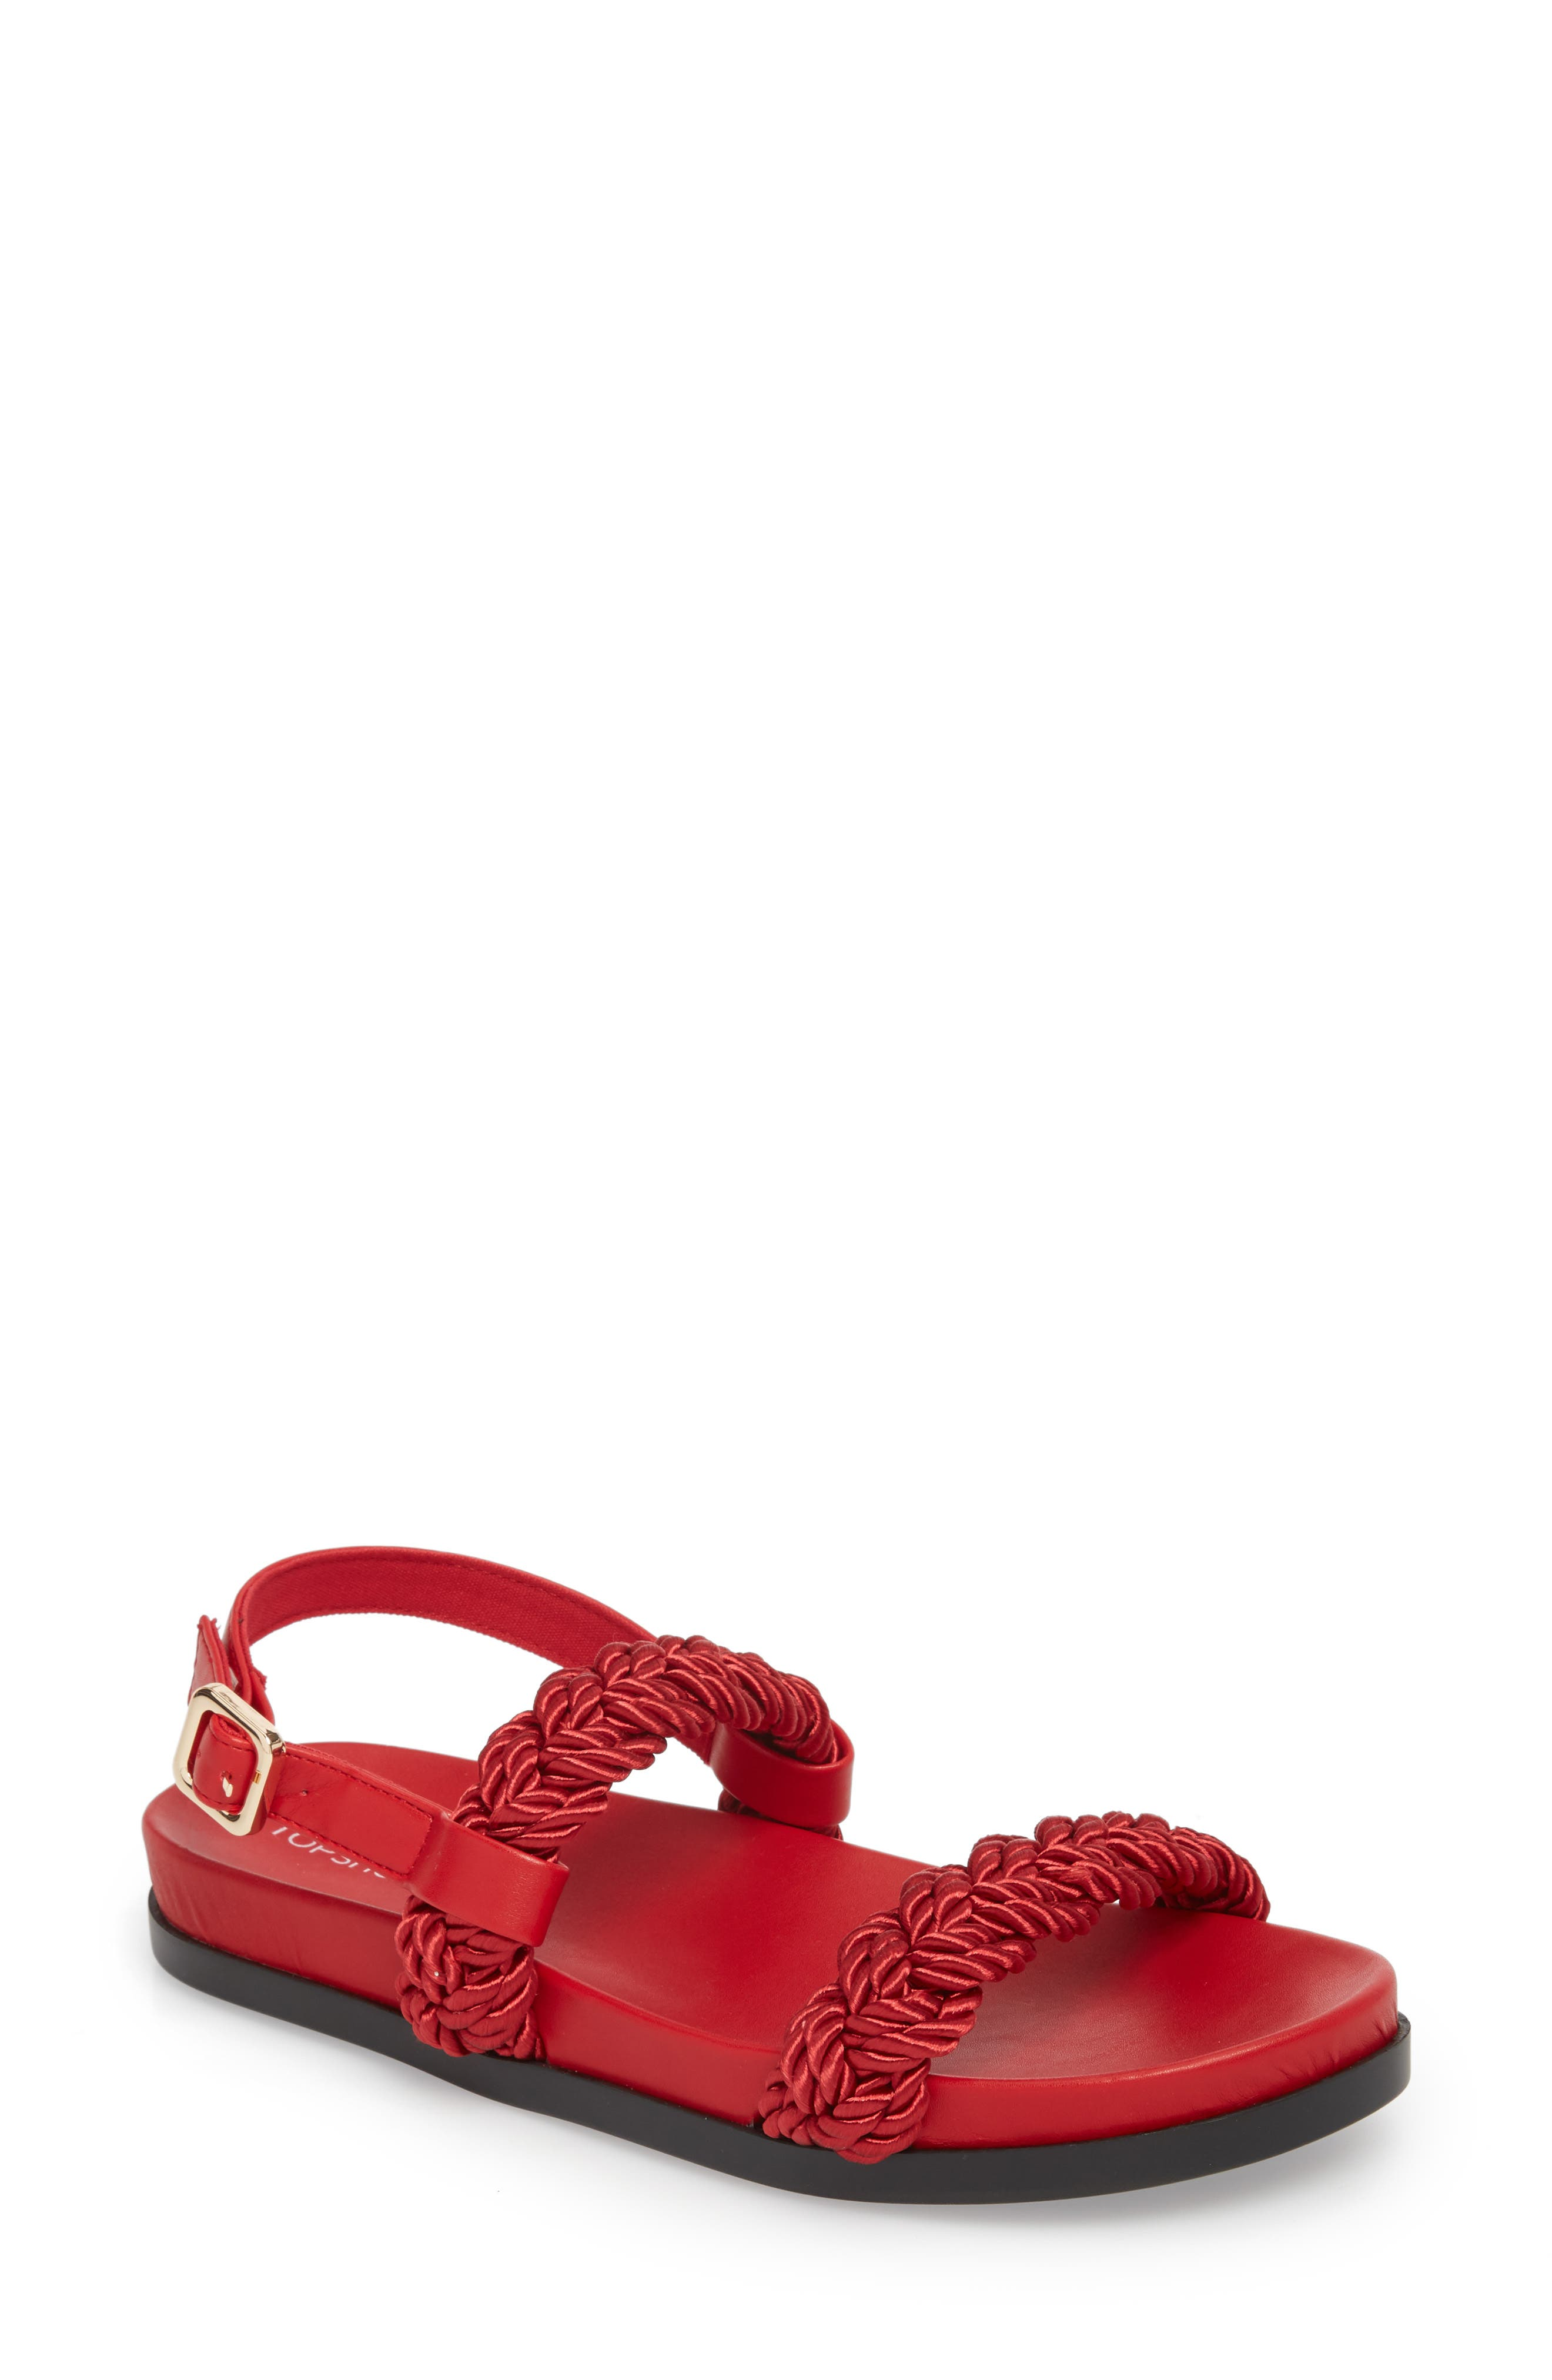 Hackney Rope Footbed Sandals,                             Main thumbnail 1, color,                             Red